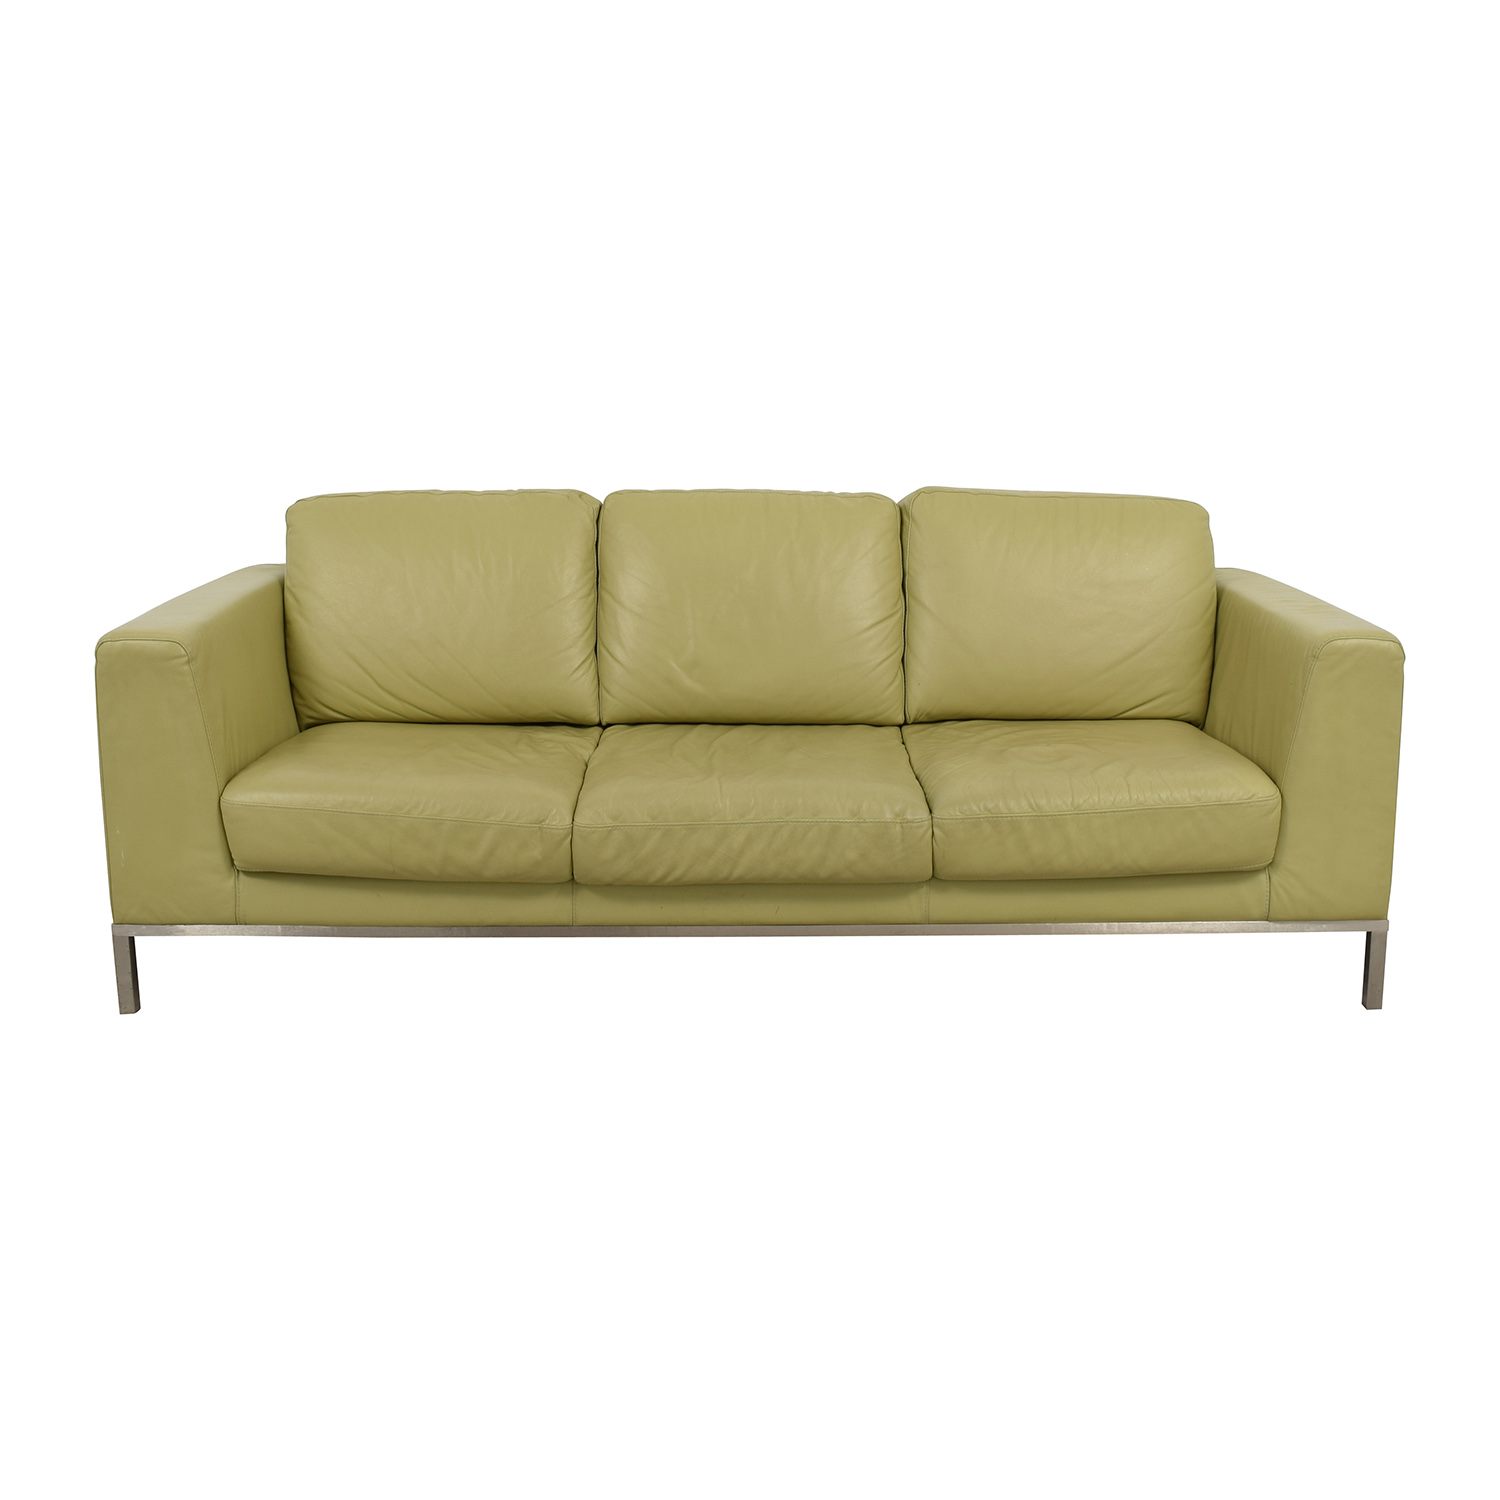 Buy Italsofa Italsofa Green Leather Sofa Online ...